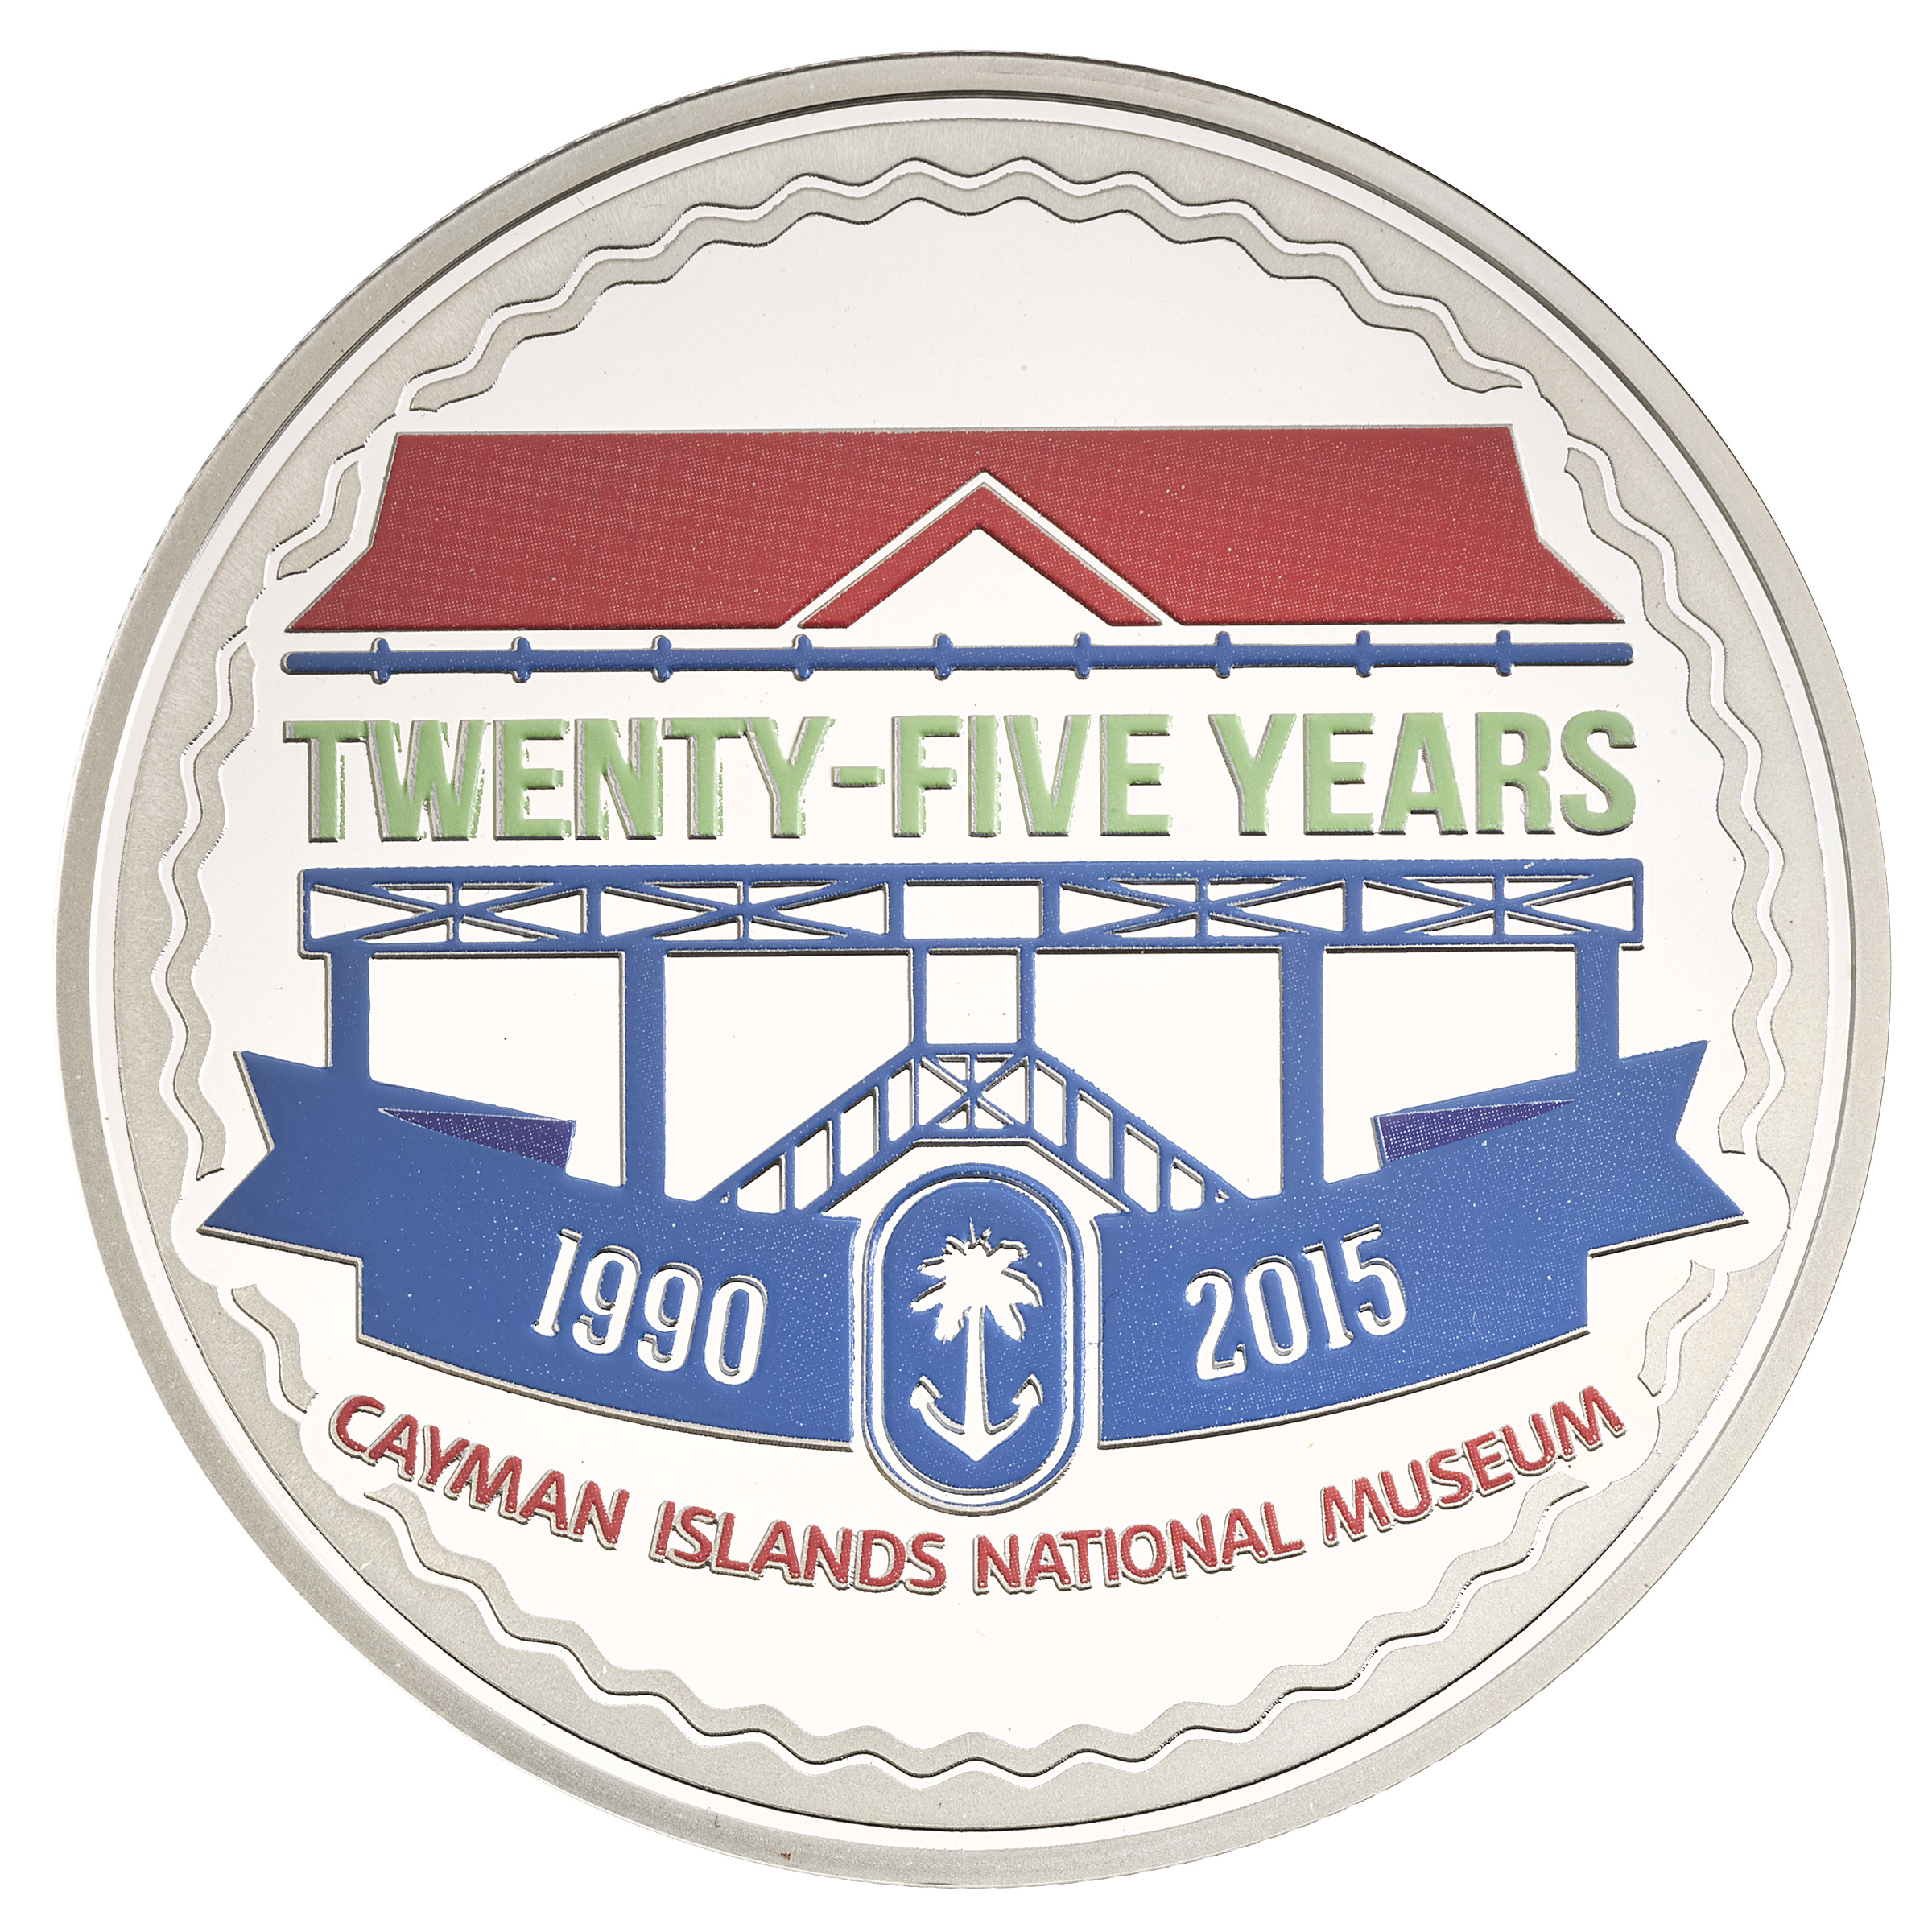 25th Anniversary of the Cayman Islands National Museum